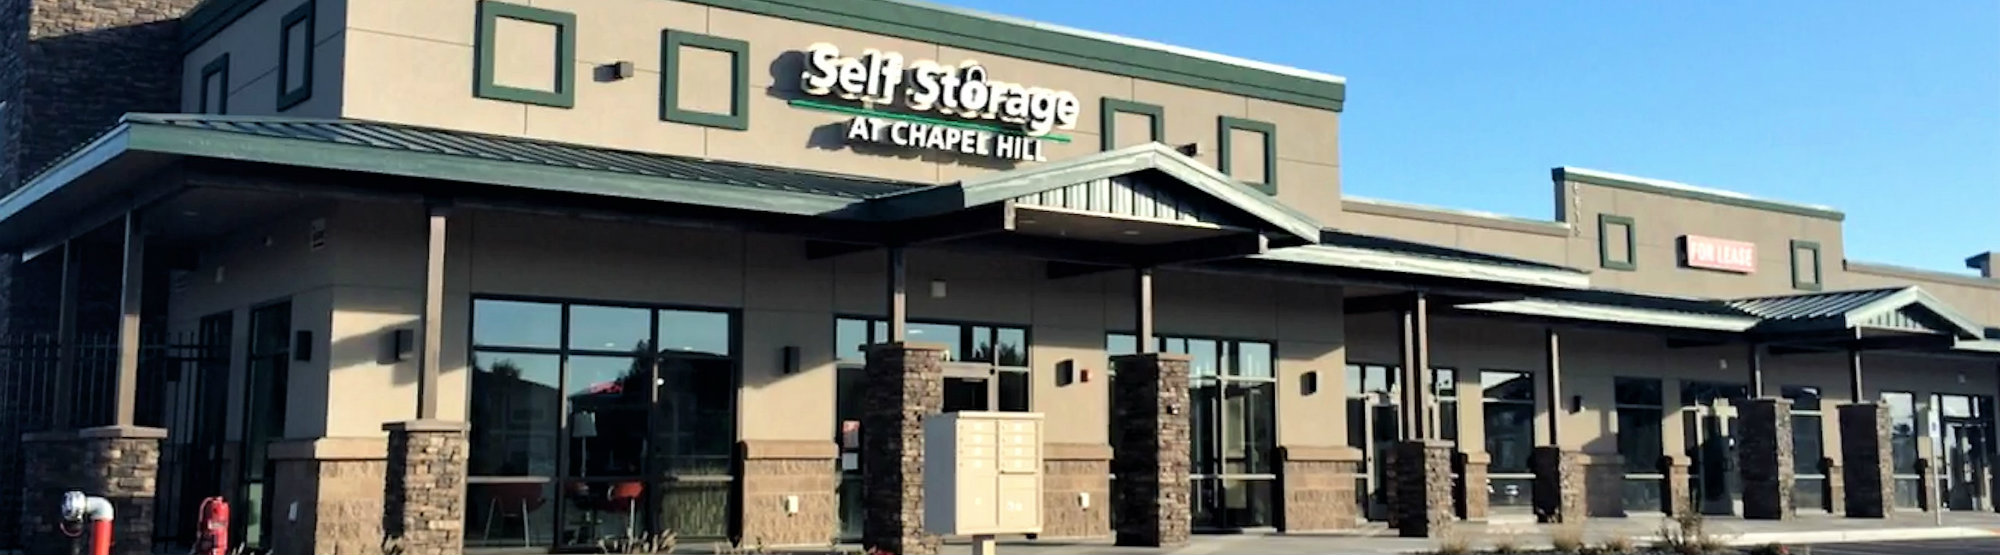 Self Storage at Chapel Hill